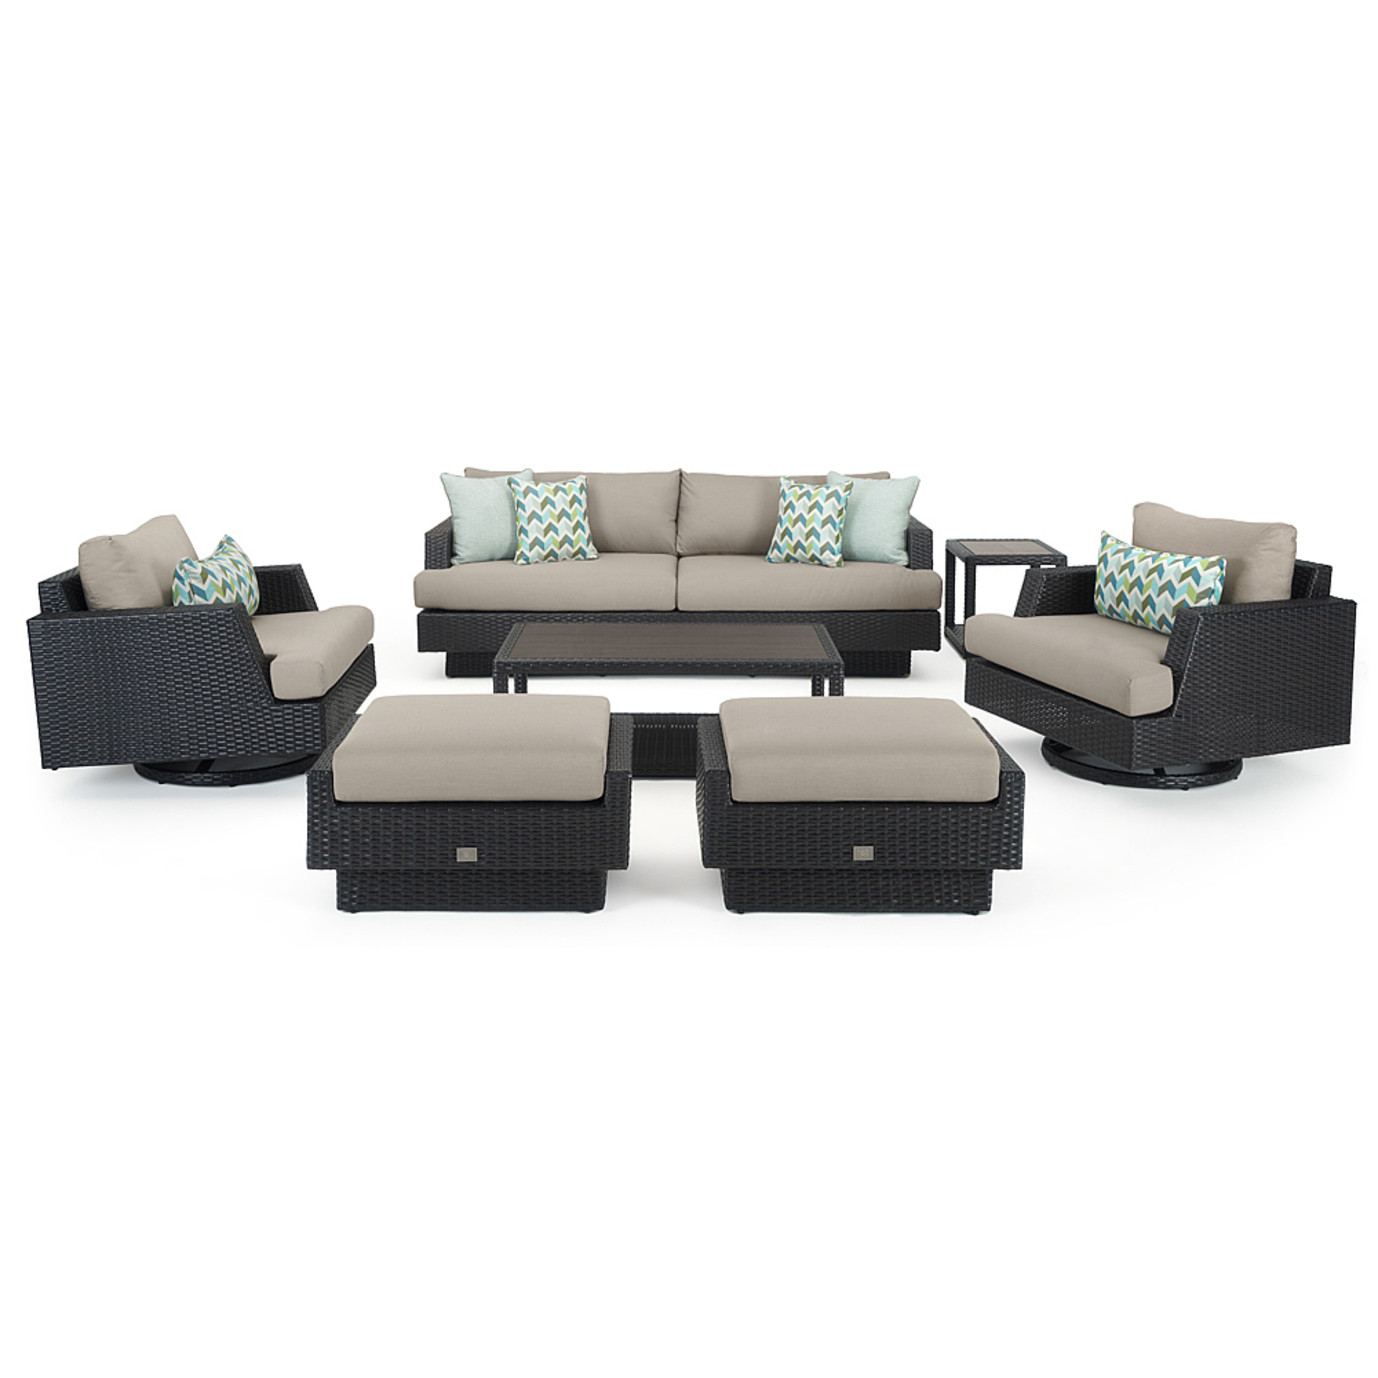 Portofino® Comfort 7 Piece Motion Wood Seating Set - Taupe Mist